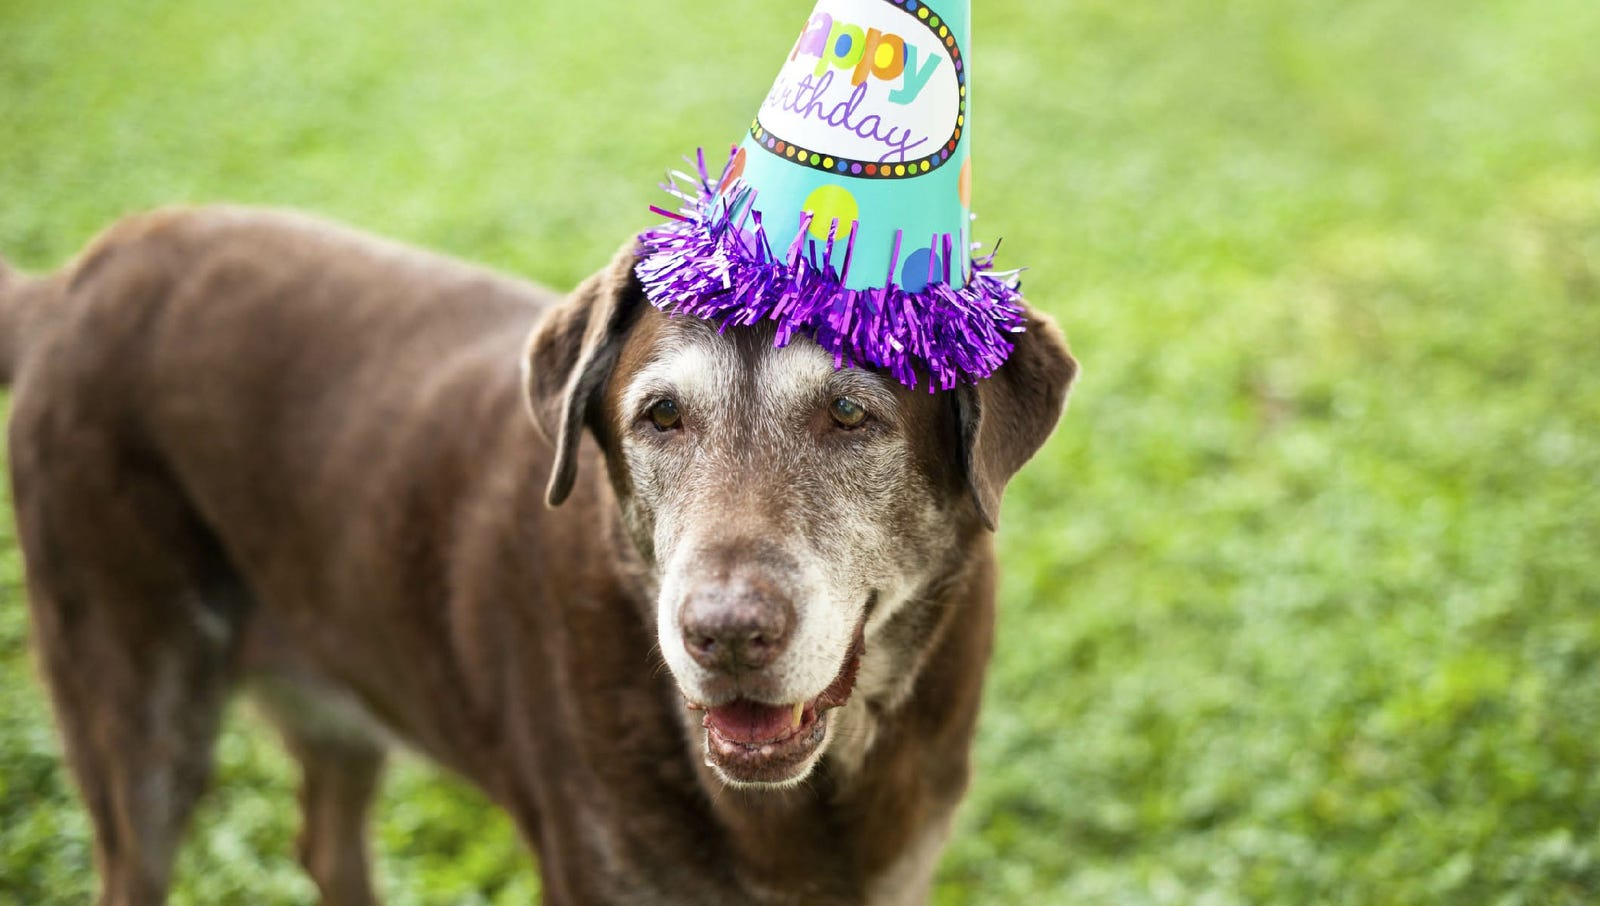 Can't tell Peanut he doesn't know how to party. Guess how old this lovable mutt just turned in dog years!